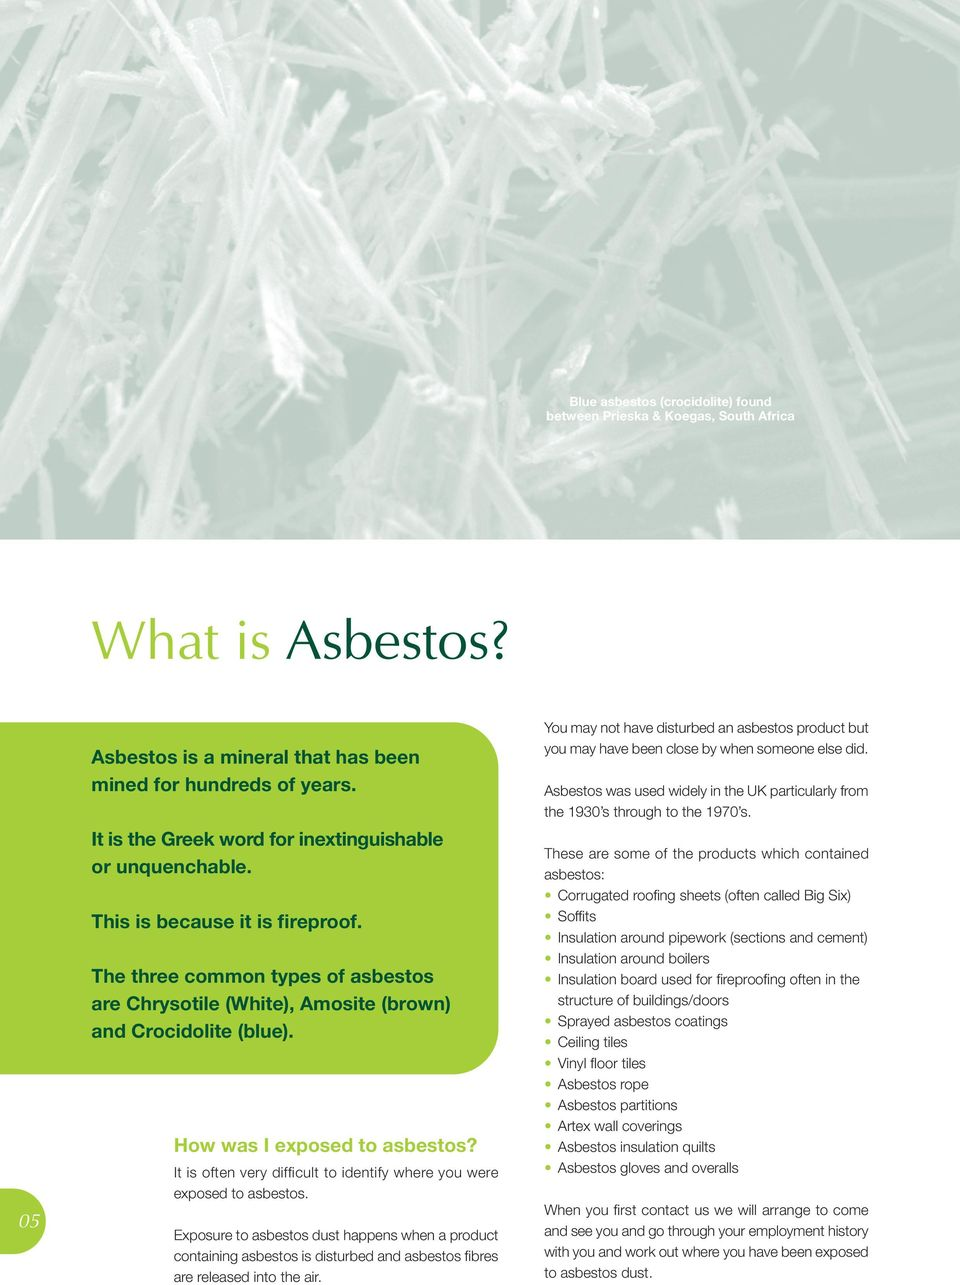 How was I exposed to asbestos? It is often very difficult to identify where you were exposed to asbestos.